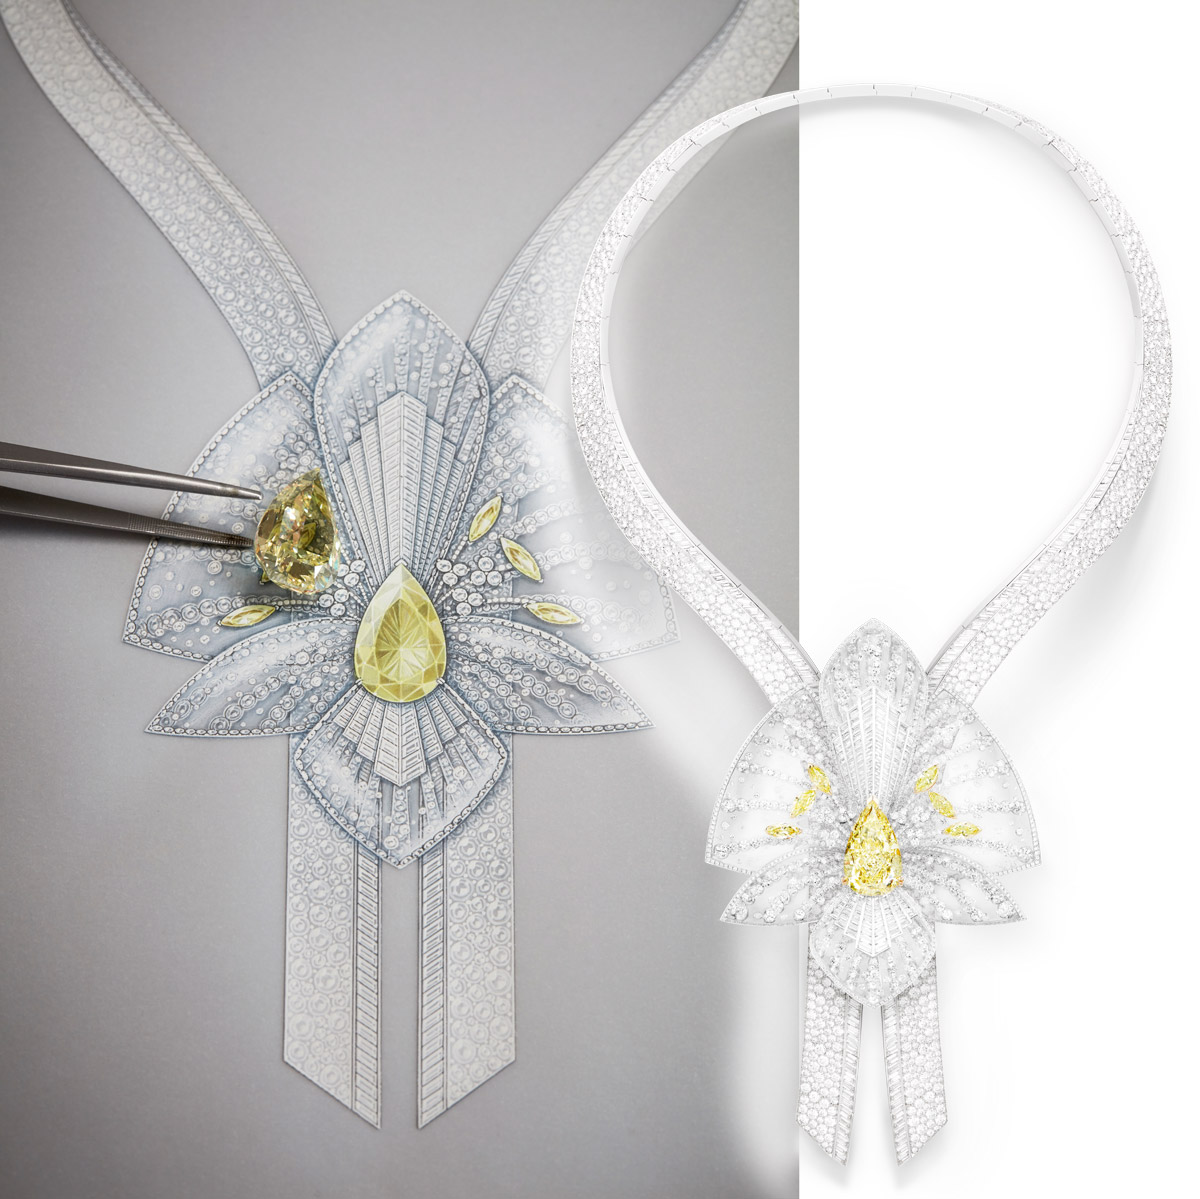 Boucheron Lys Radiant necklace with a 20-carat yellow diamond, rock crystal and colourless diamonds